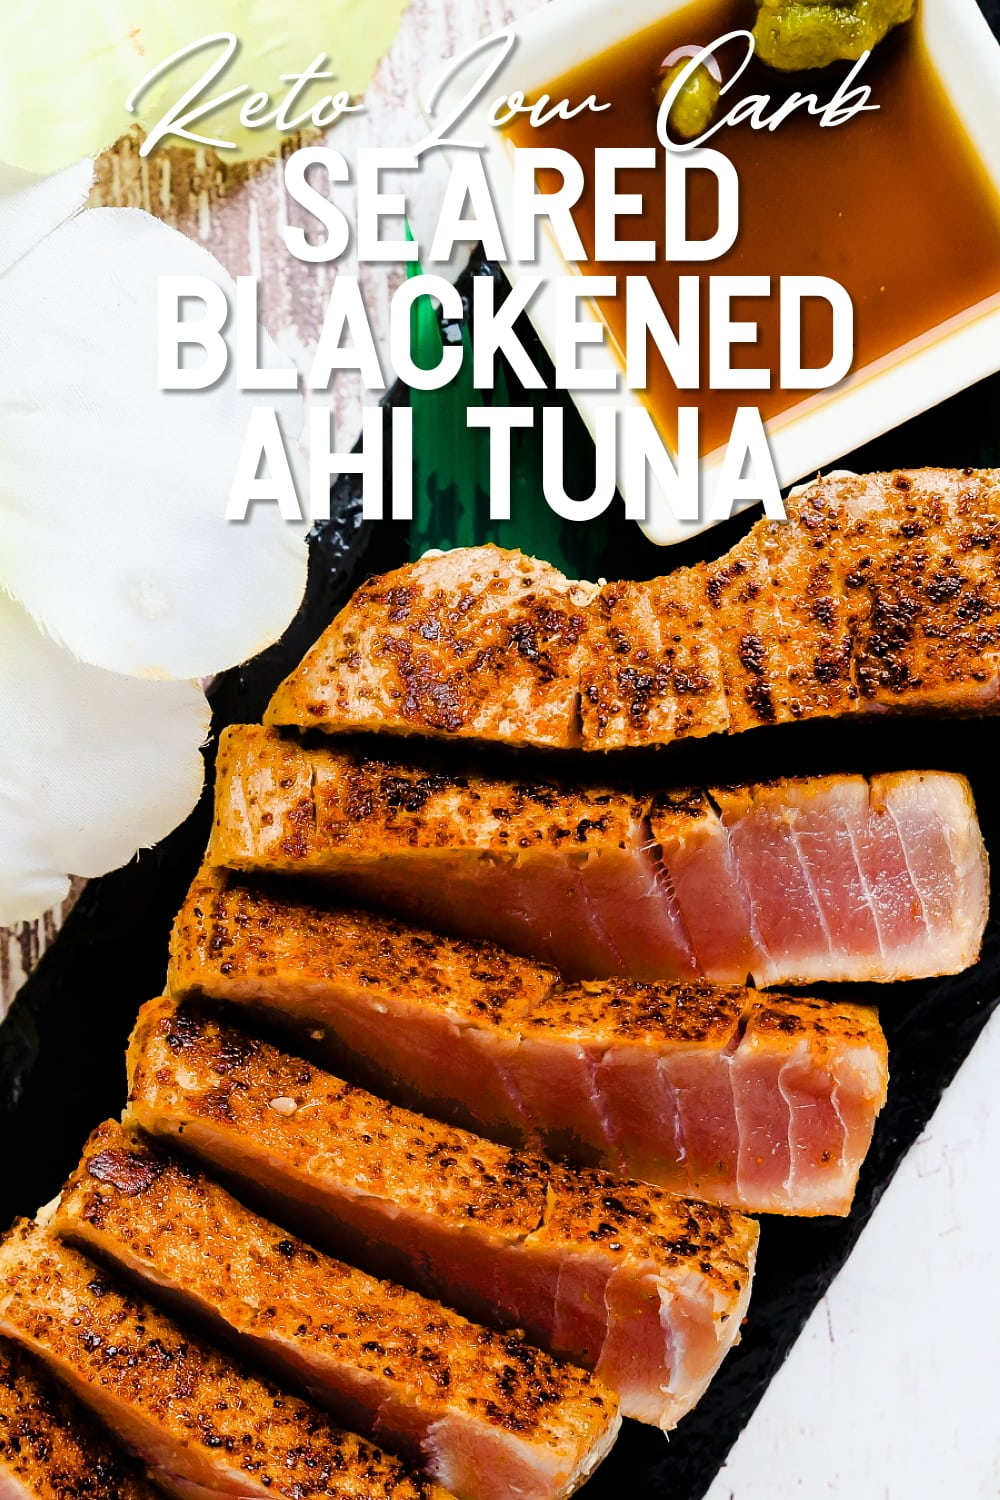 Seared Blackened Ahi Tuna Steak served on a black slate with dipping sauce